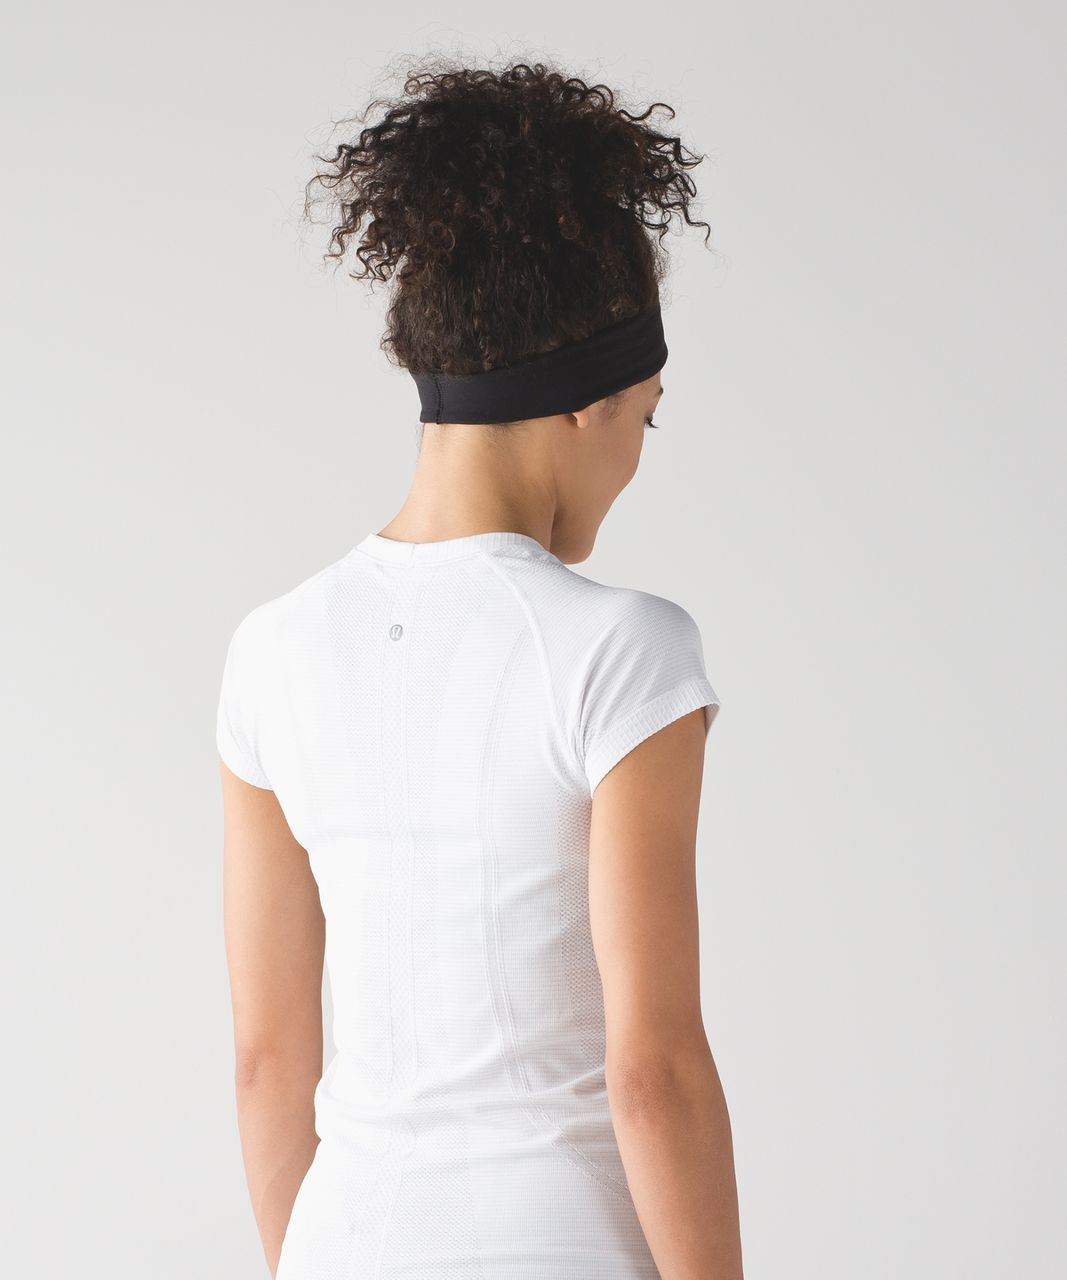 Lululemon Fly Away Tamer Headband II - Black (First Release)